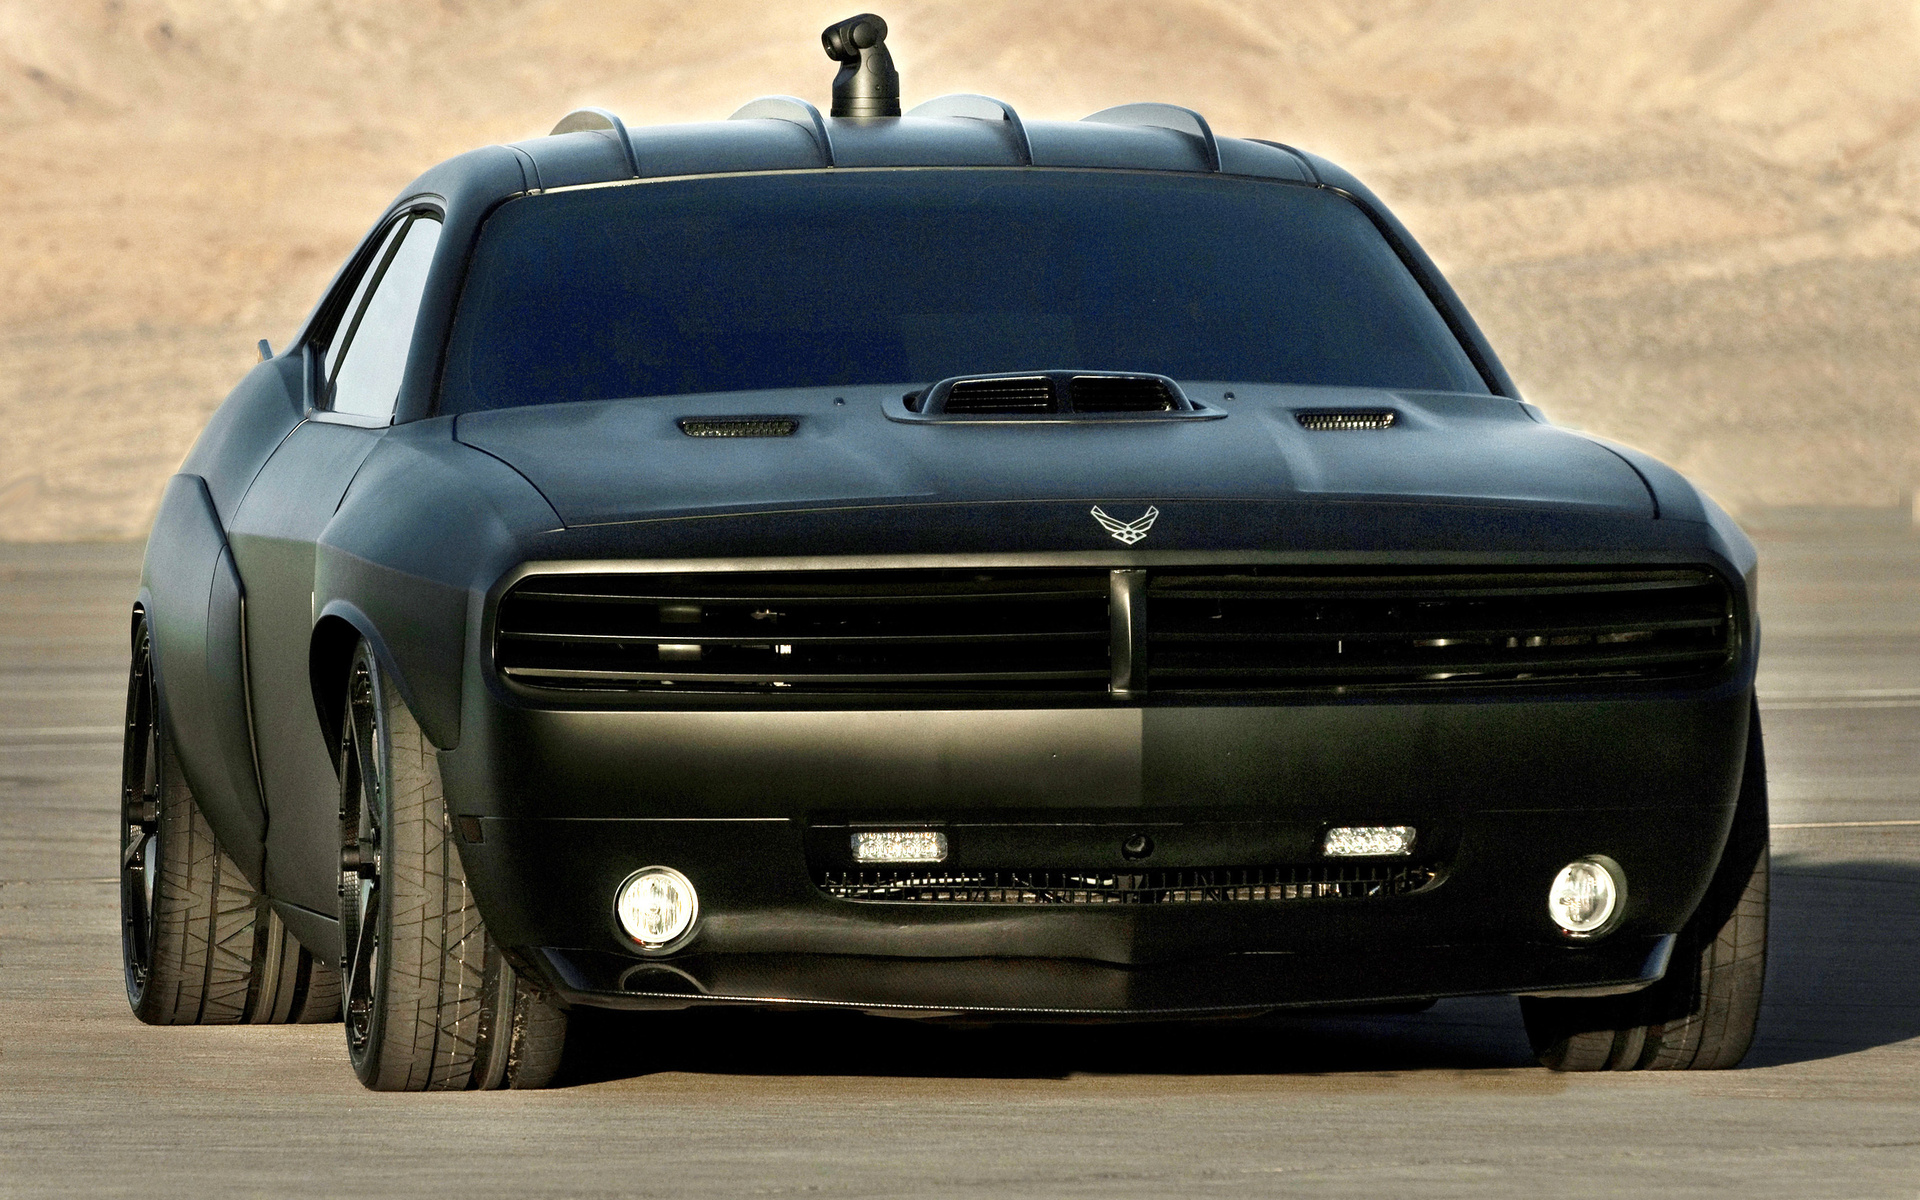 Click image for larger version  Name:Dodge-Challenger-Tuning-Custom-Muscle-Cars-Hot-Rod-Image-Gallery.jpg Views:5496 Size:957.3 KB ID:164080